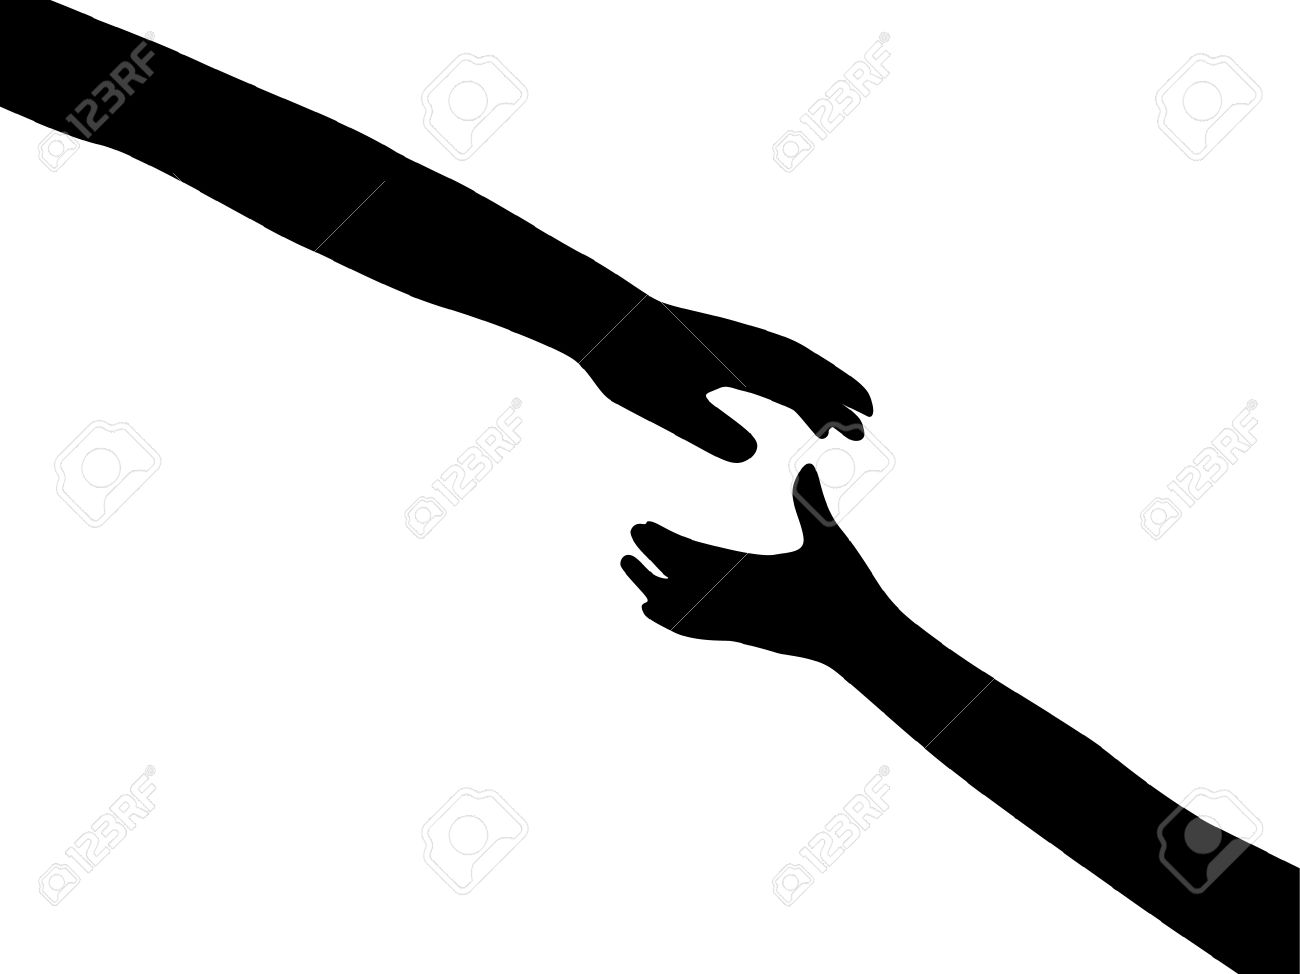 Human hands symbol of hope royalty free cliparts vectors and human hands symbol of hope buycottarizona Image collections